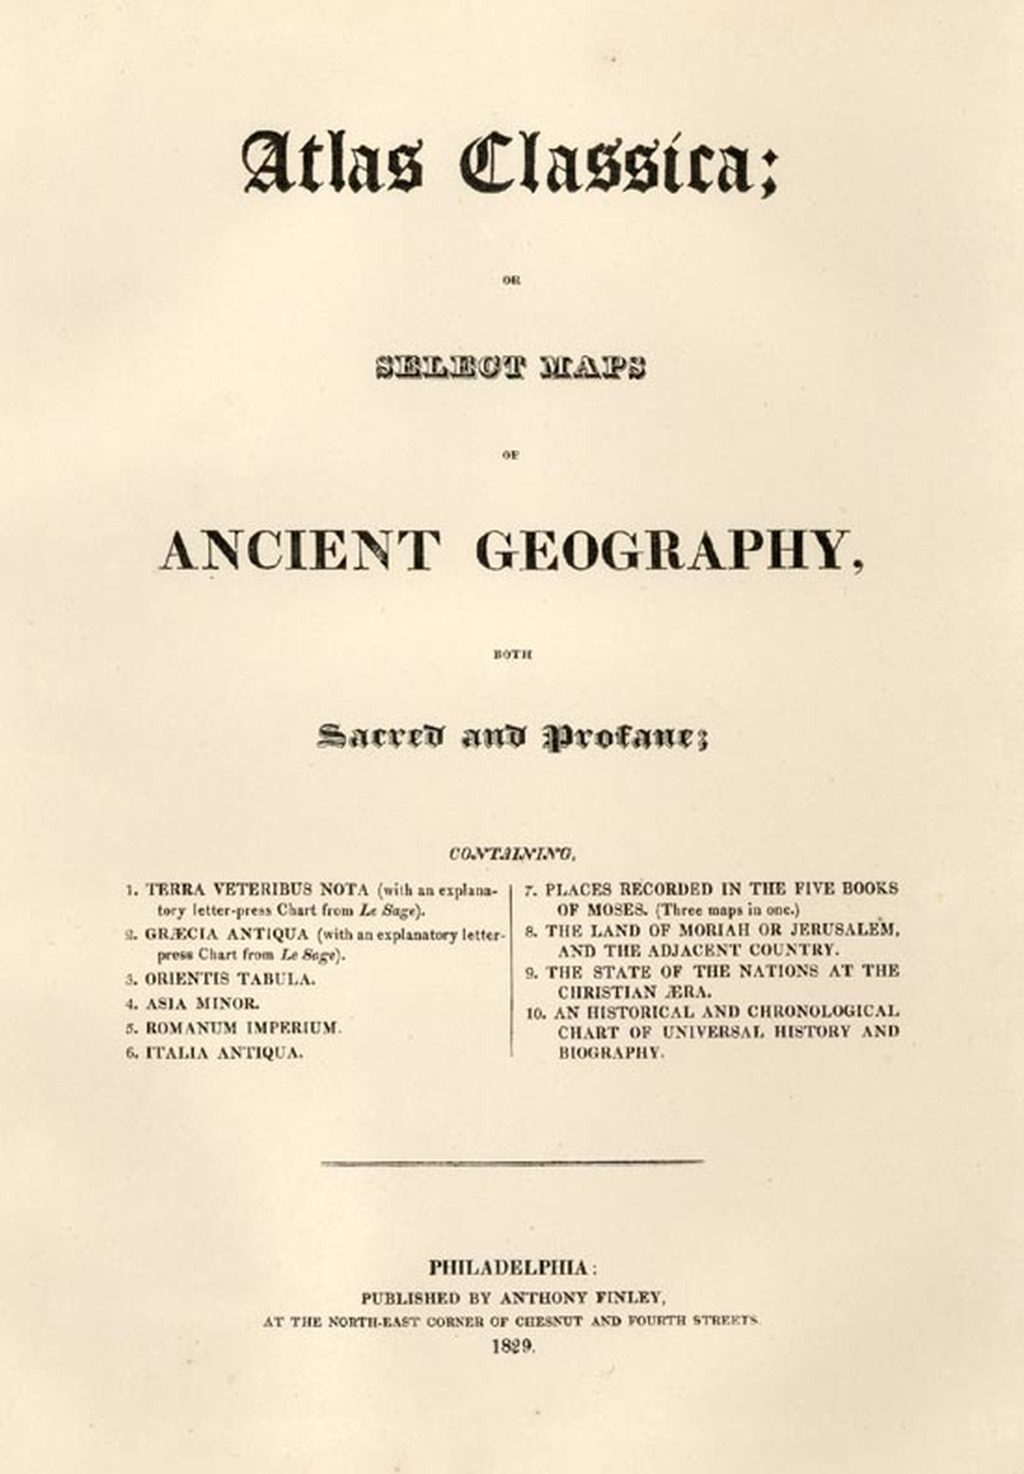 [Title Page] Atlas Classica; or Select Maps of Ancient Geography, both Sacred and Profane . . . 1829 By Anthony Finley